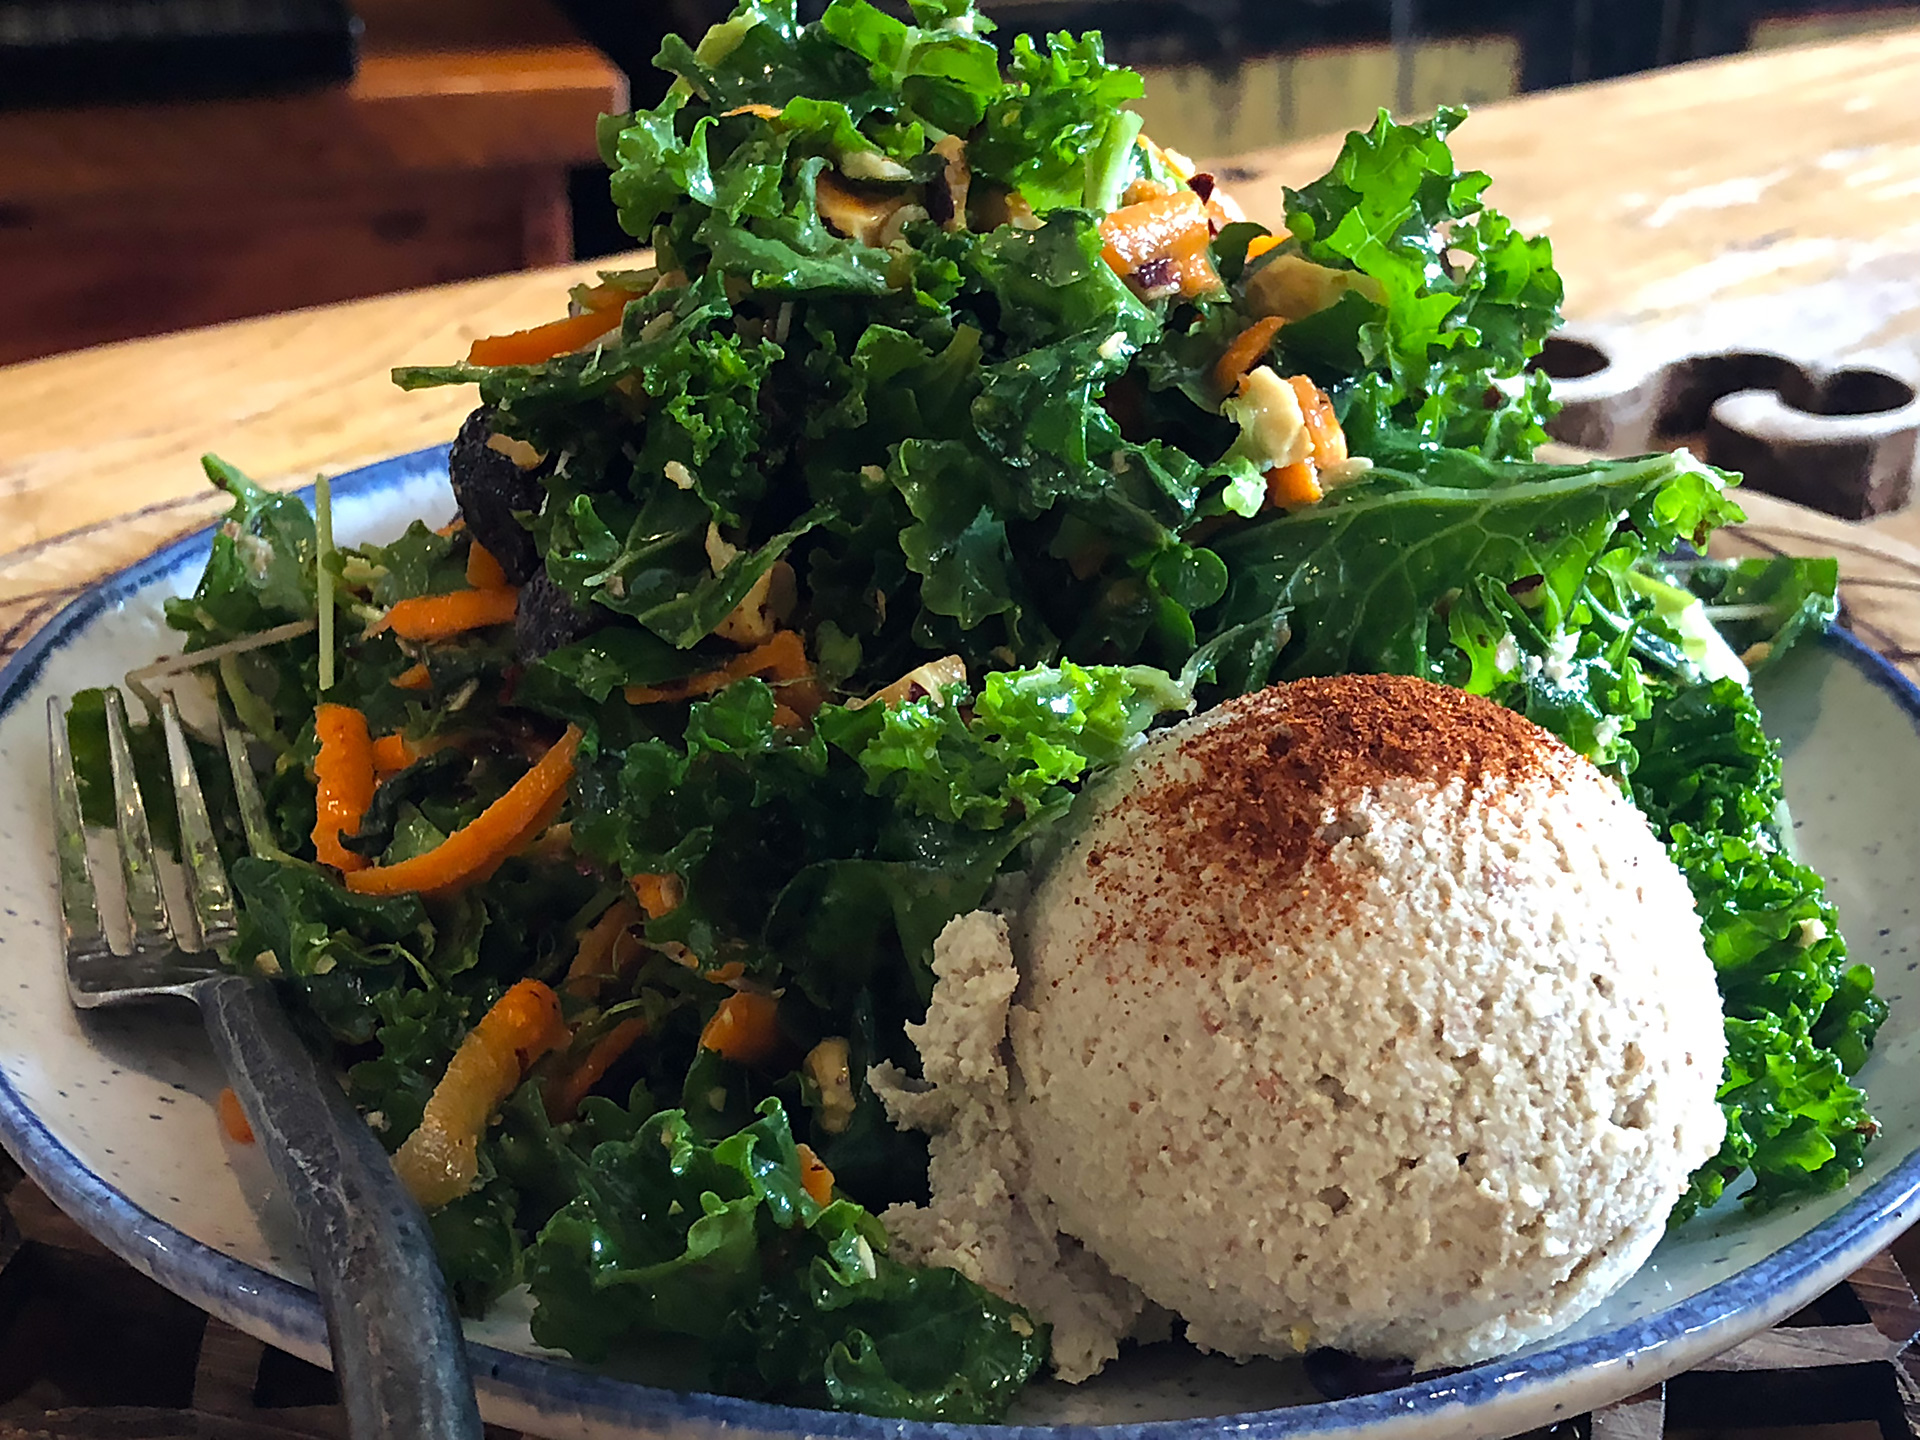 Citrus Hazelnut Kale Salad: kale, carrot, sprouts, orange slices, toasted hazelnuts, dried figs, in an apple cider vinaigrette. ($12) Add avocado, hummus, Rhizocali tempeh ($2)